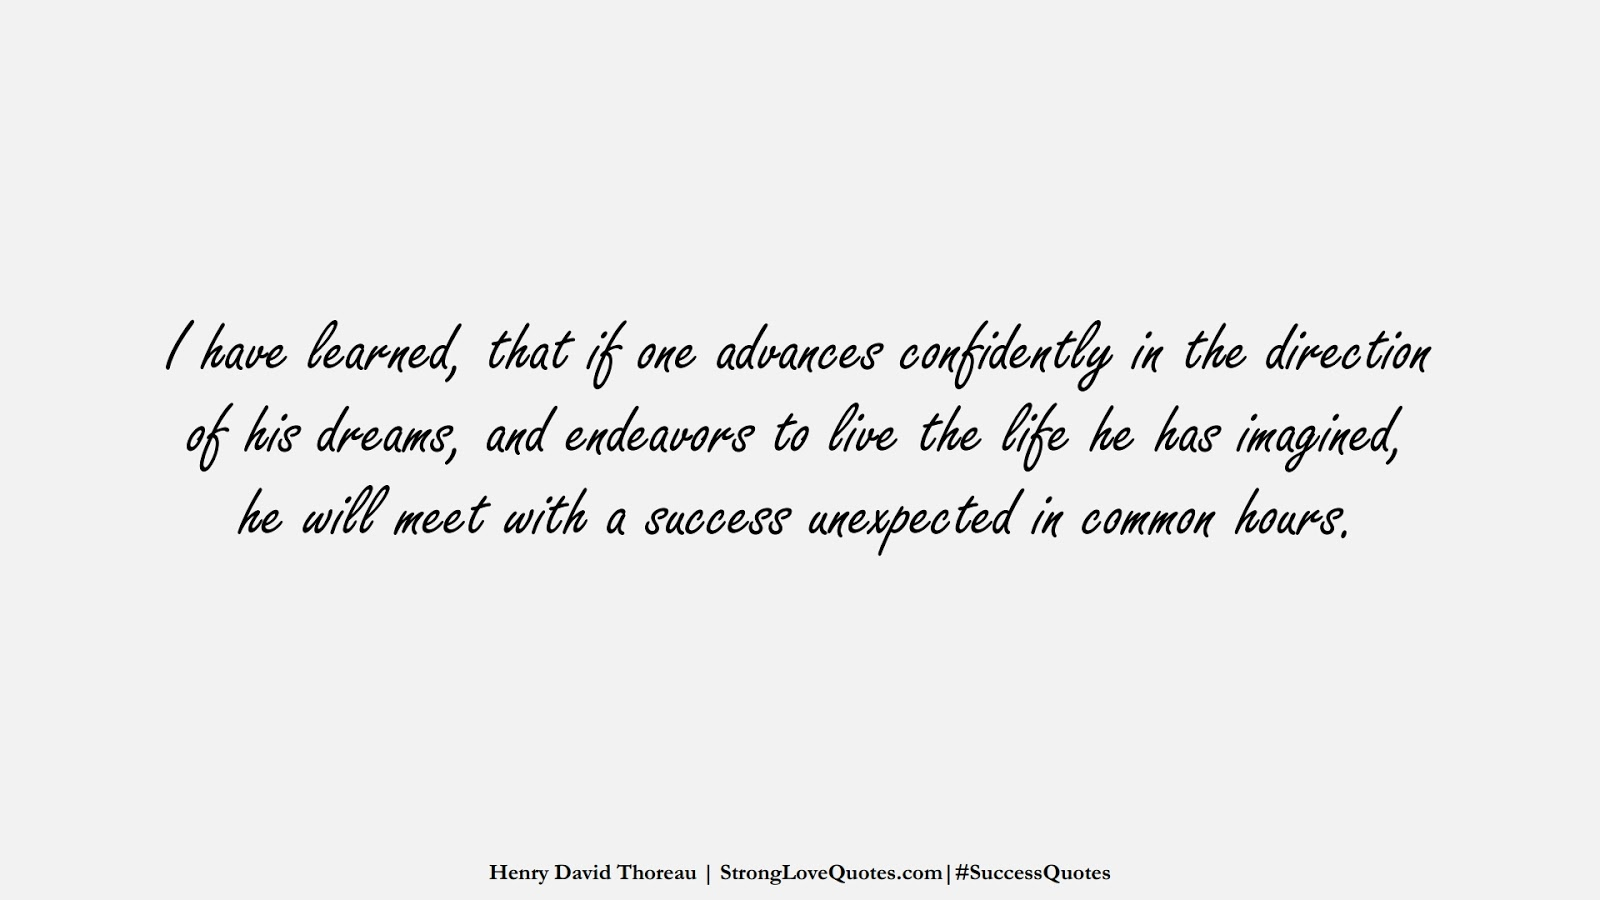 I have learned, that if one advances confidently in the direction of his dreams, and endeavors to live the life he has imagined, he will meet with a success unexpected in common hours. (Henry David Thoreau);  #SuccessQuotes